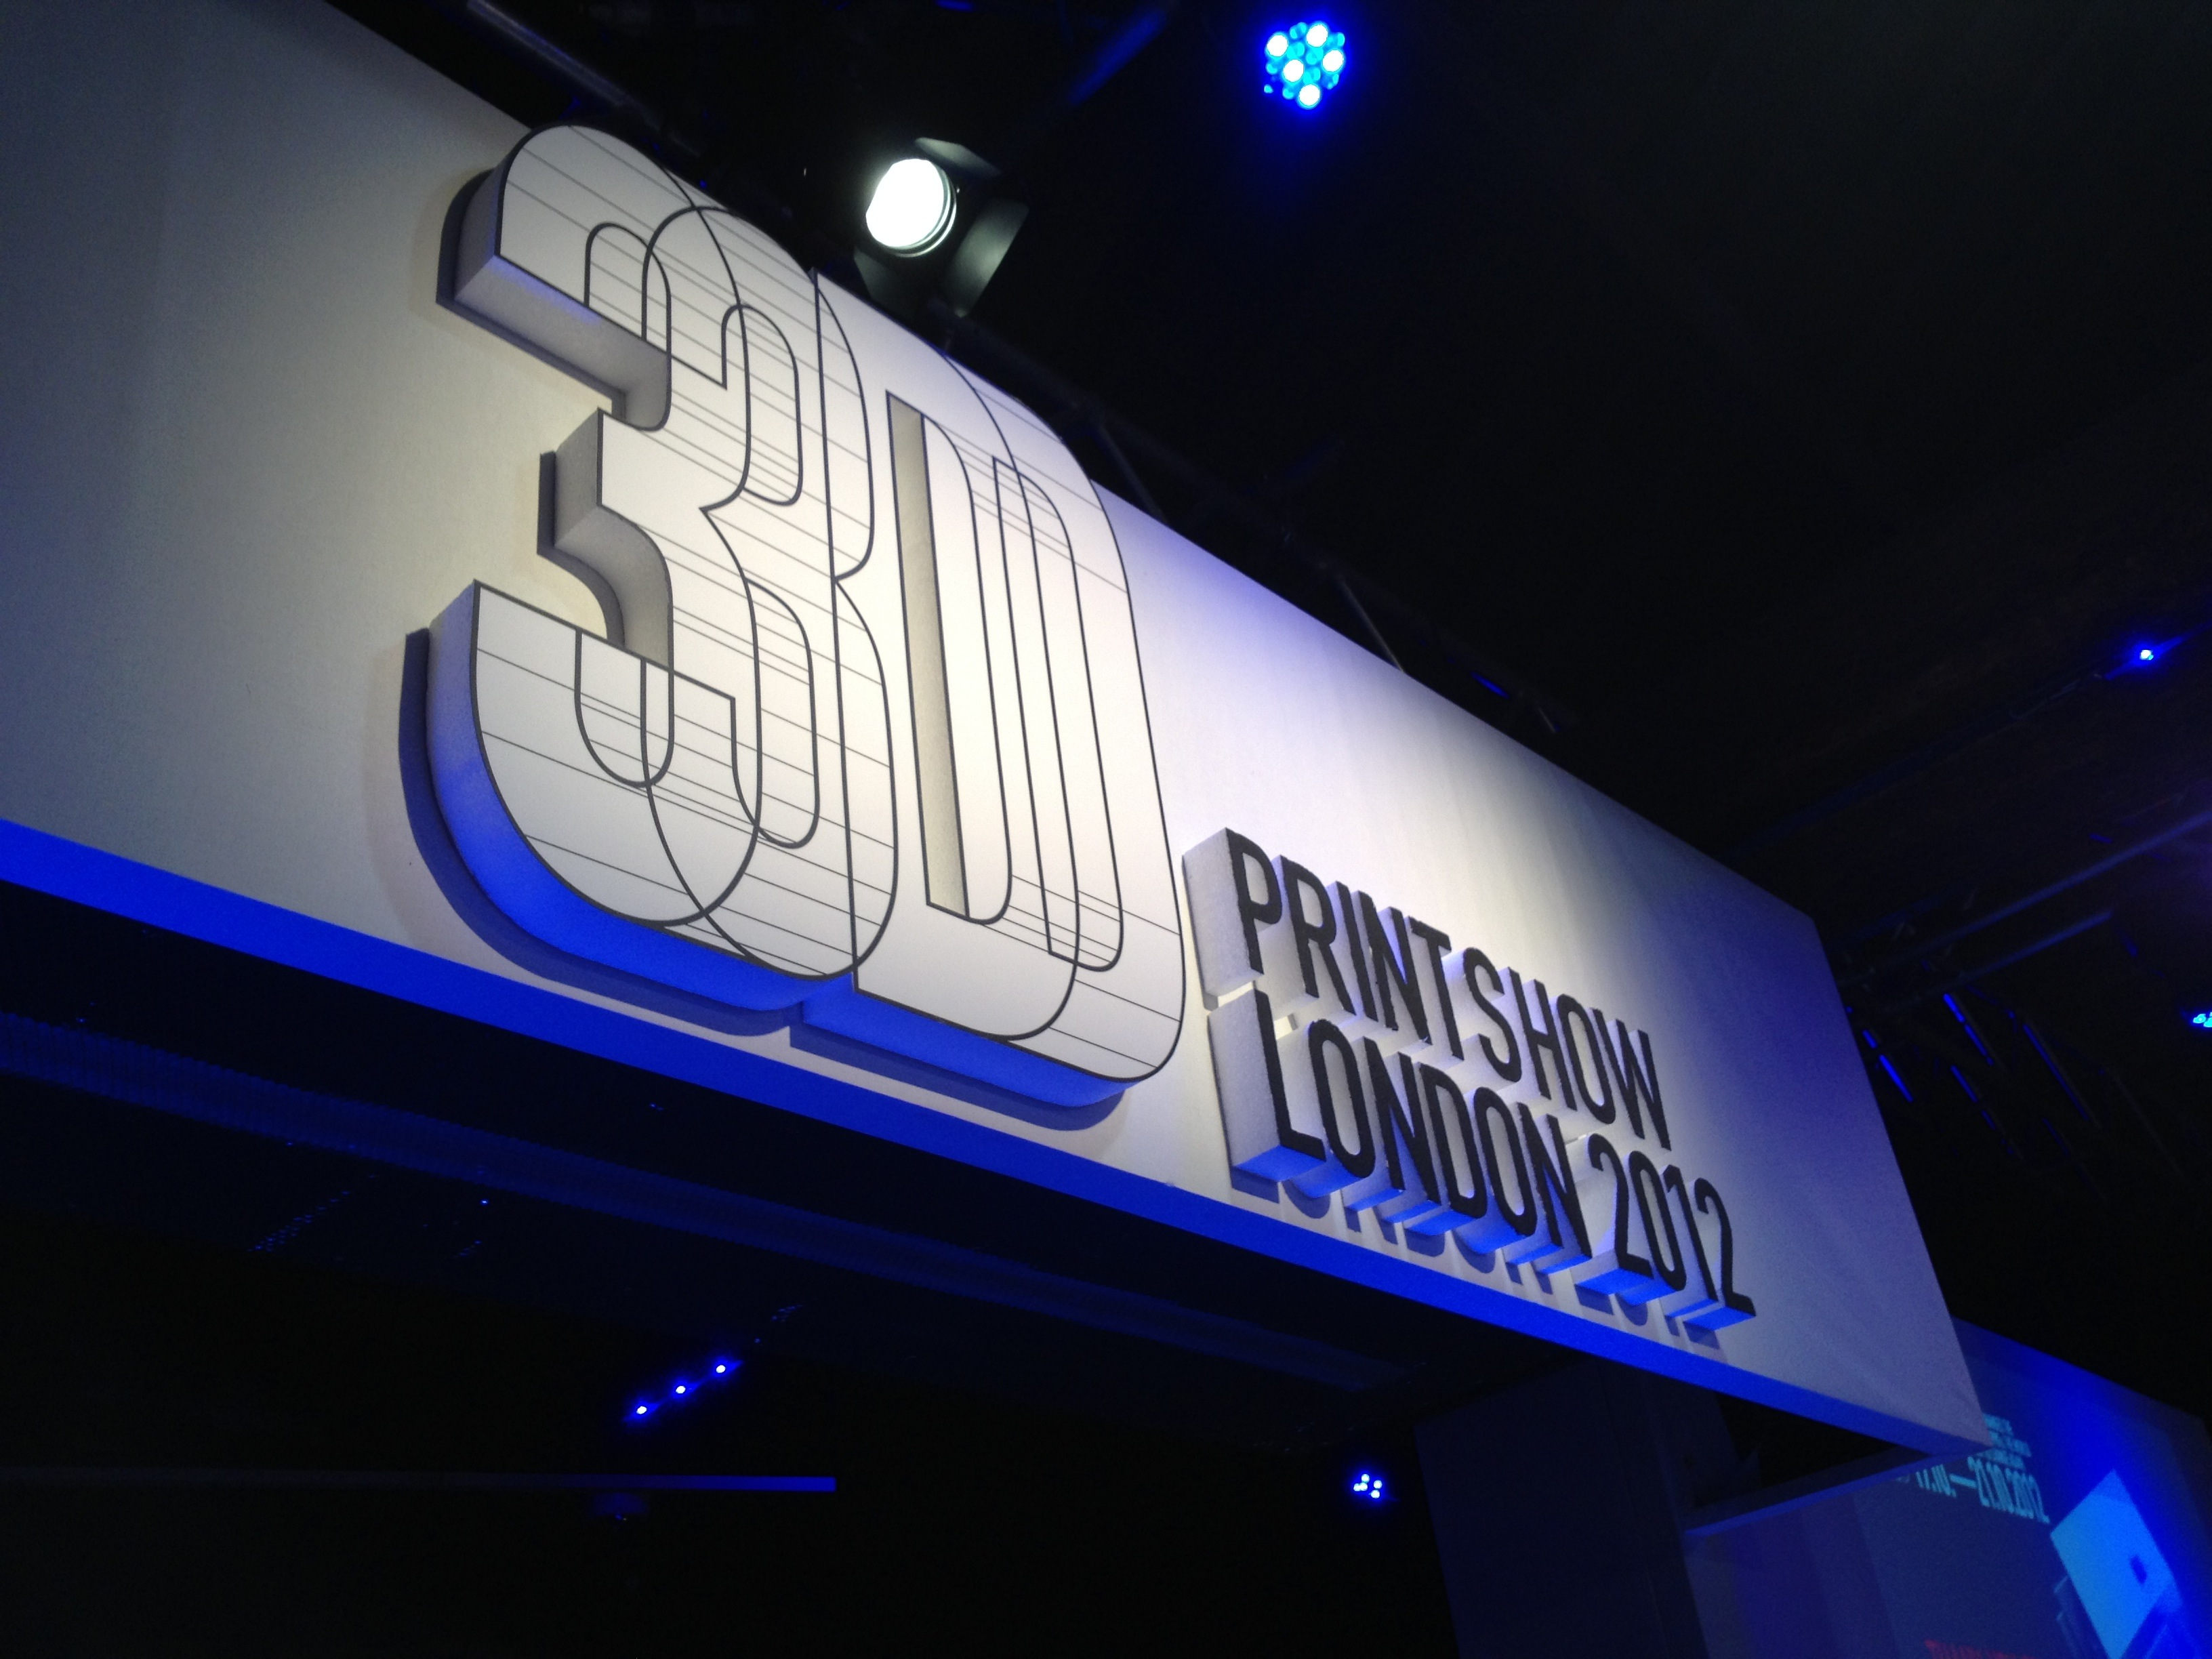 Report: First Ever 3D Printshow London 2012